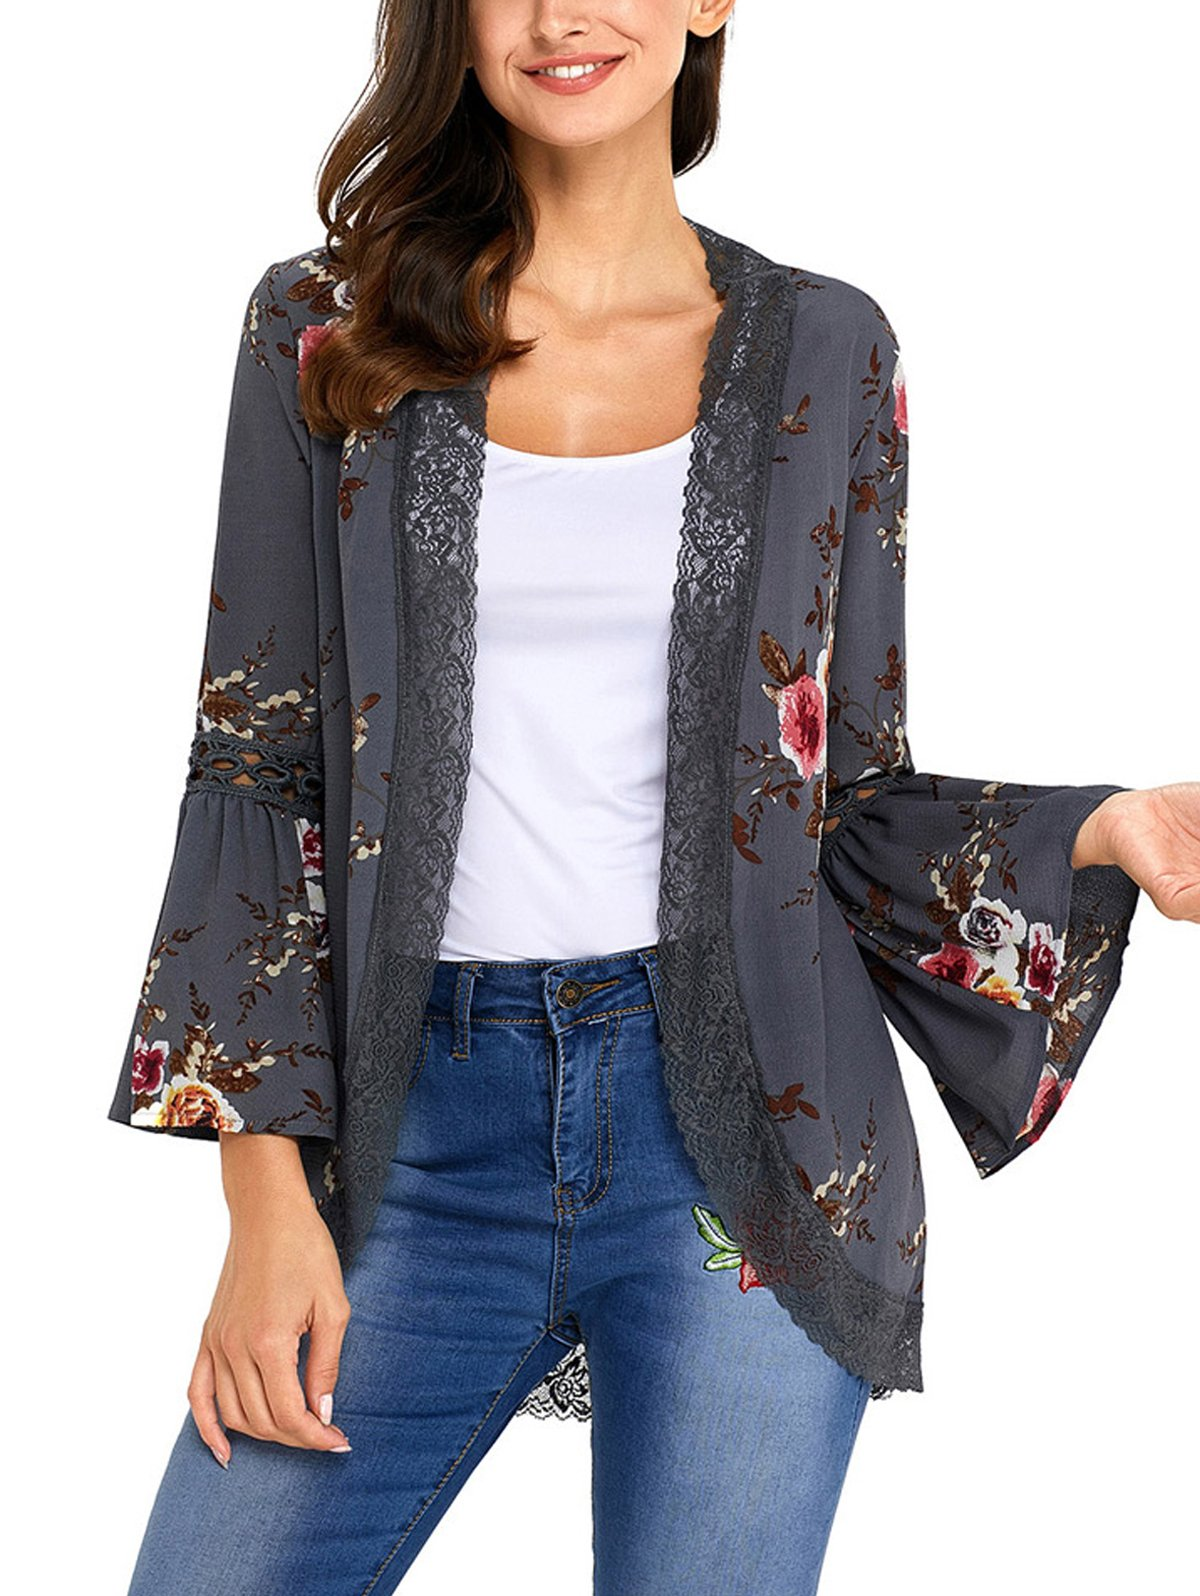 SWQZVT Women's Floral Crochet Long Loose Bell Sleeve Kimono Cardigan Lace Patchwork Casual Cover up Blouse Top Gray XL